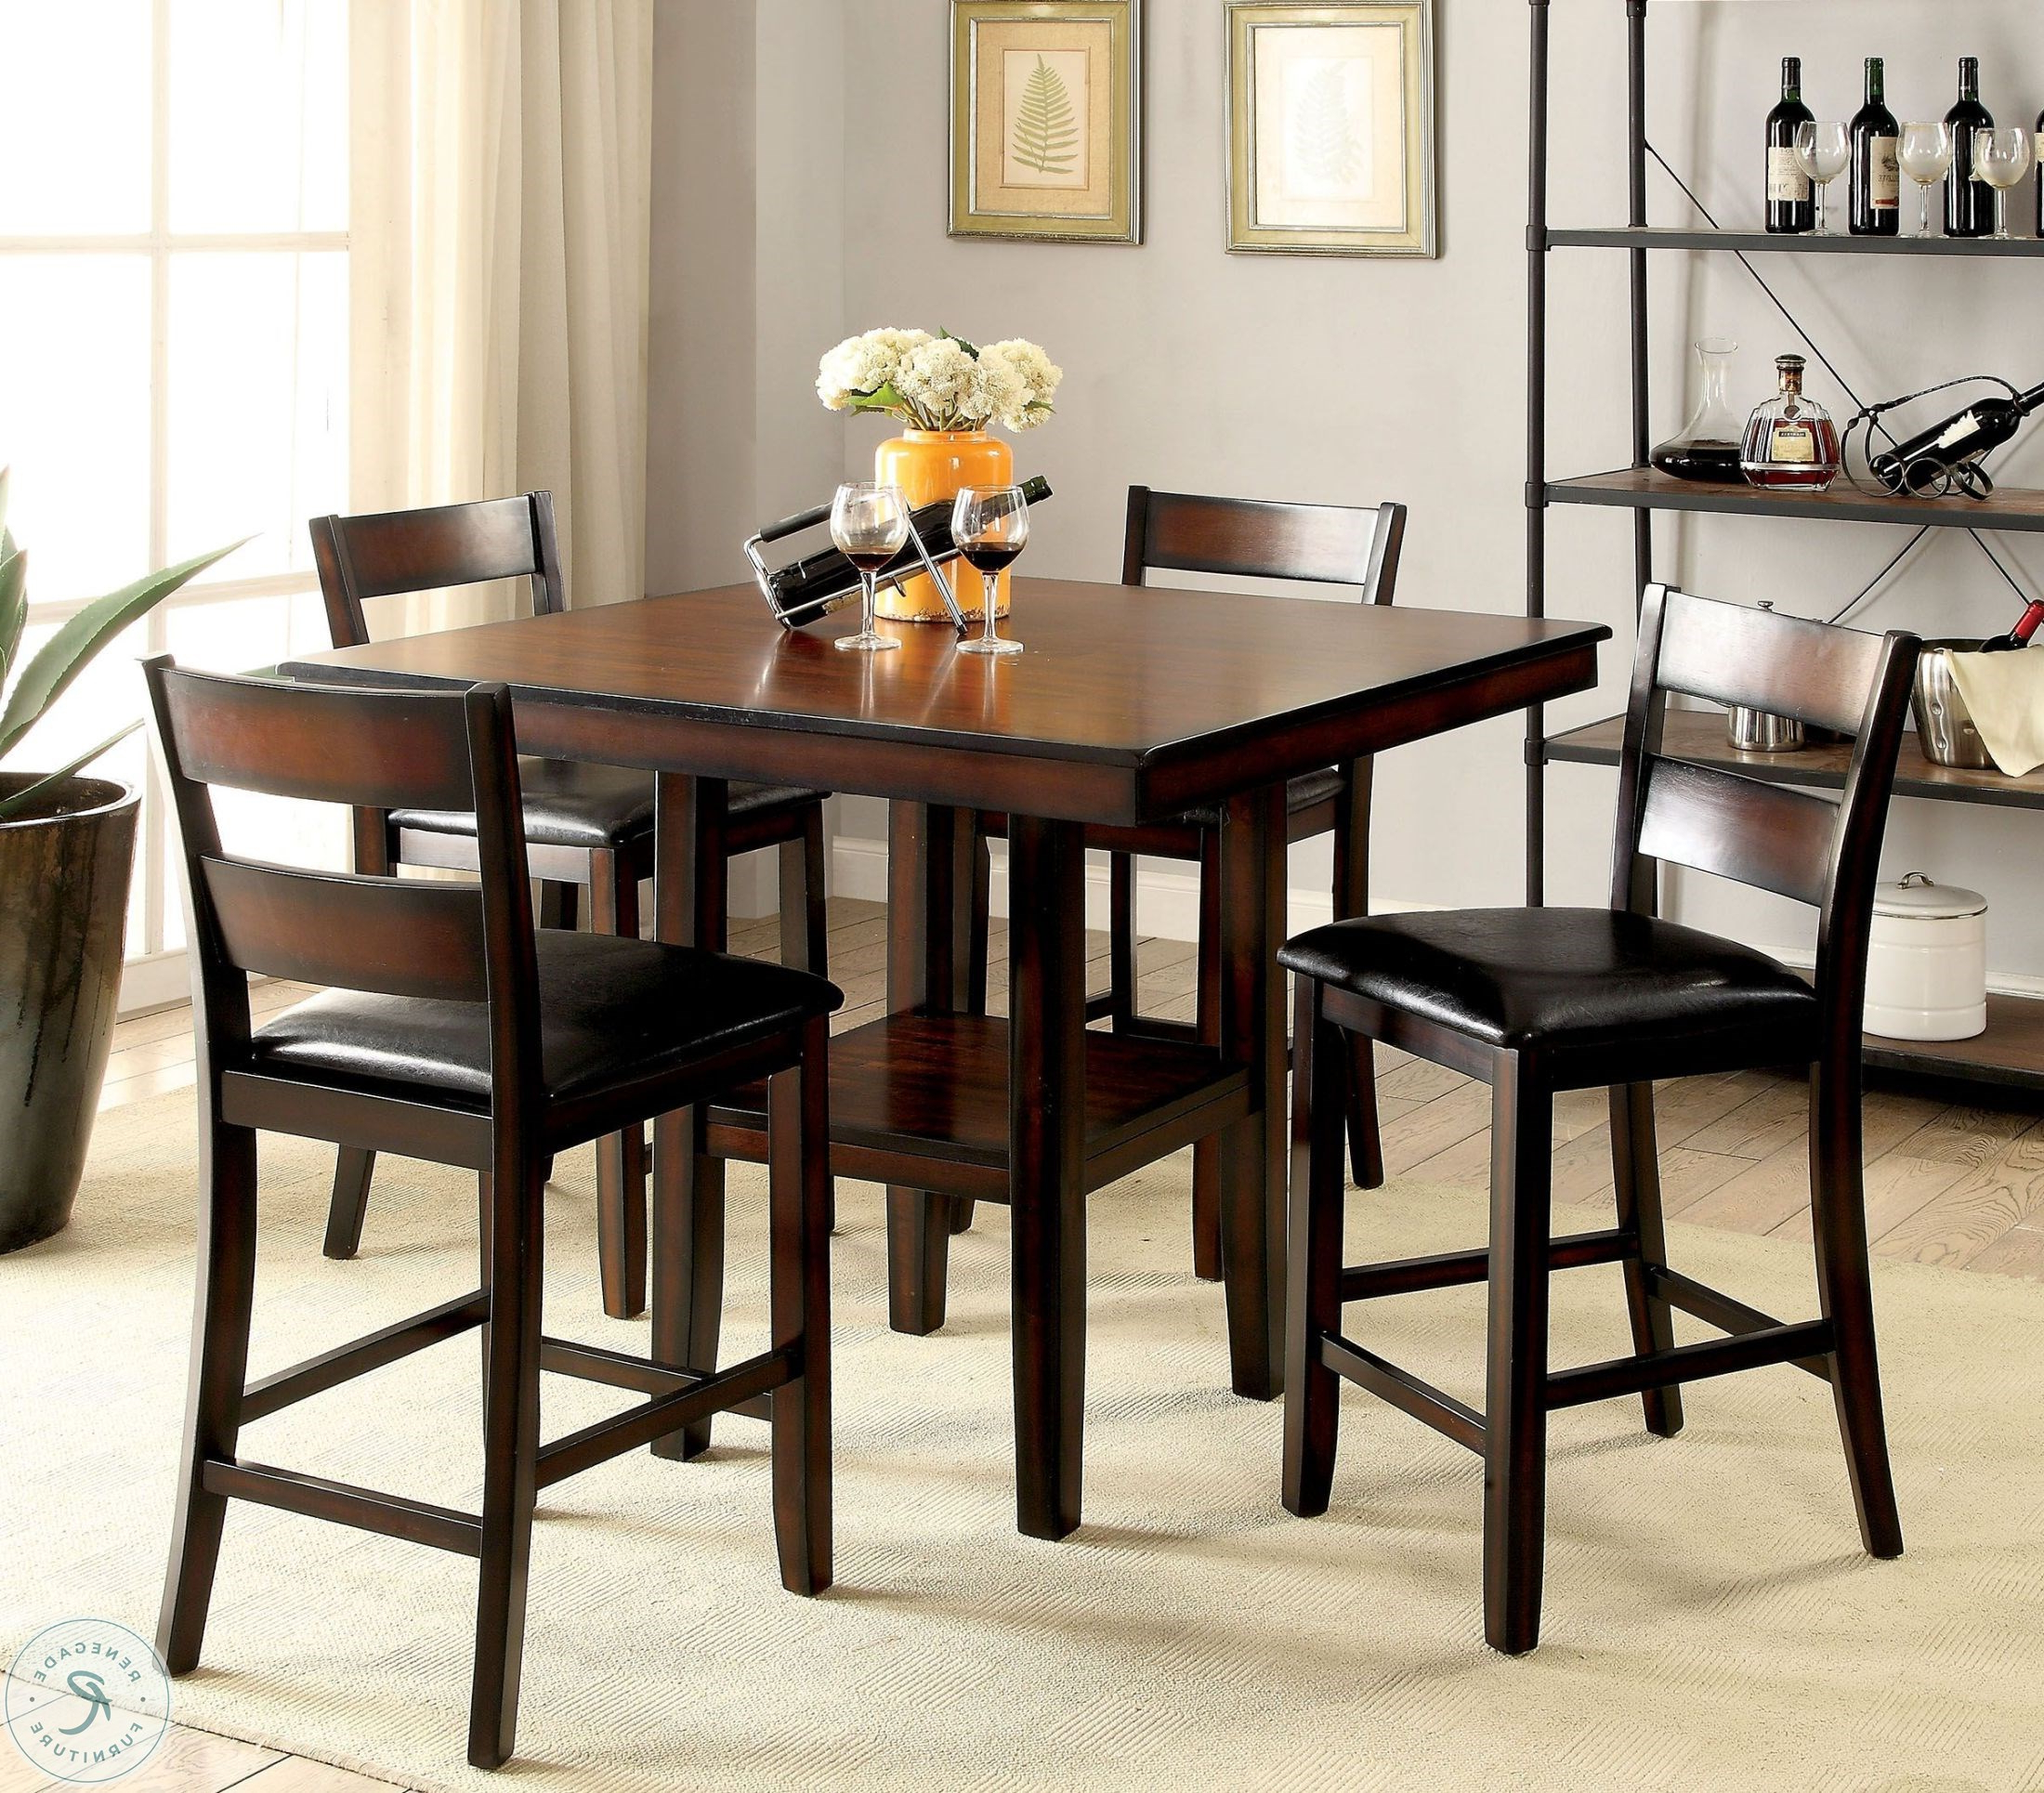 Penelope 3 Piece Counter Height Wood Dining Sets Pertaining To Famous Norah Ii Brown Cherry 5 Piece Counter Height Dining Set From (View 23 of 25)